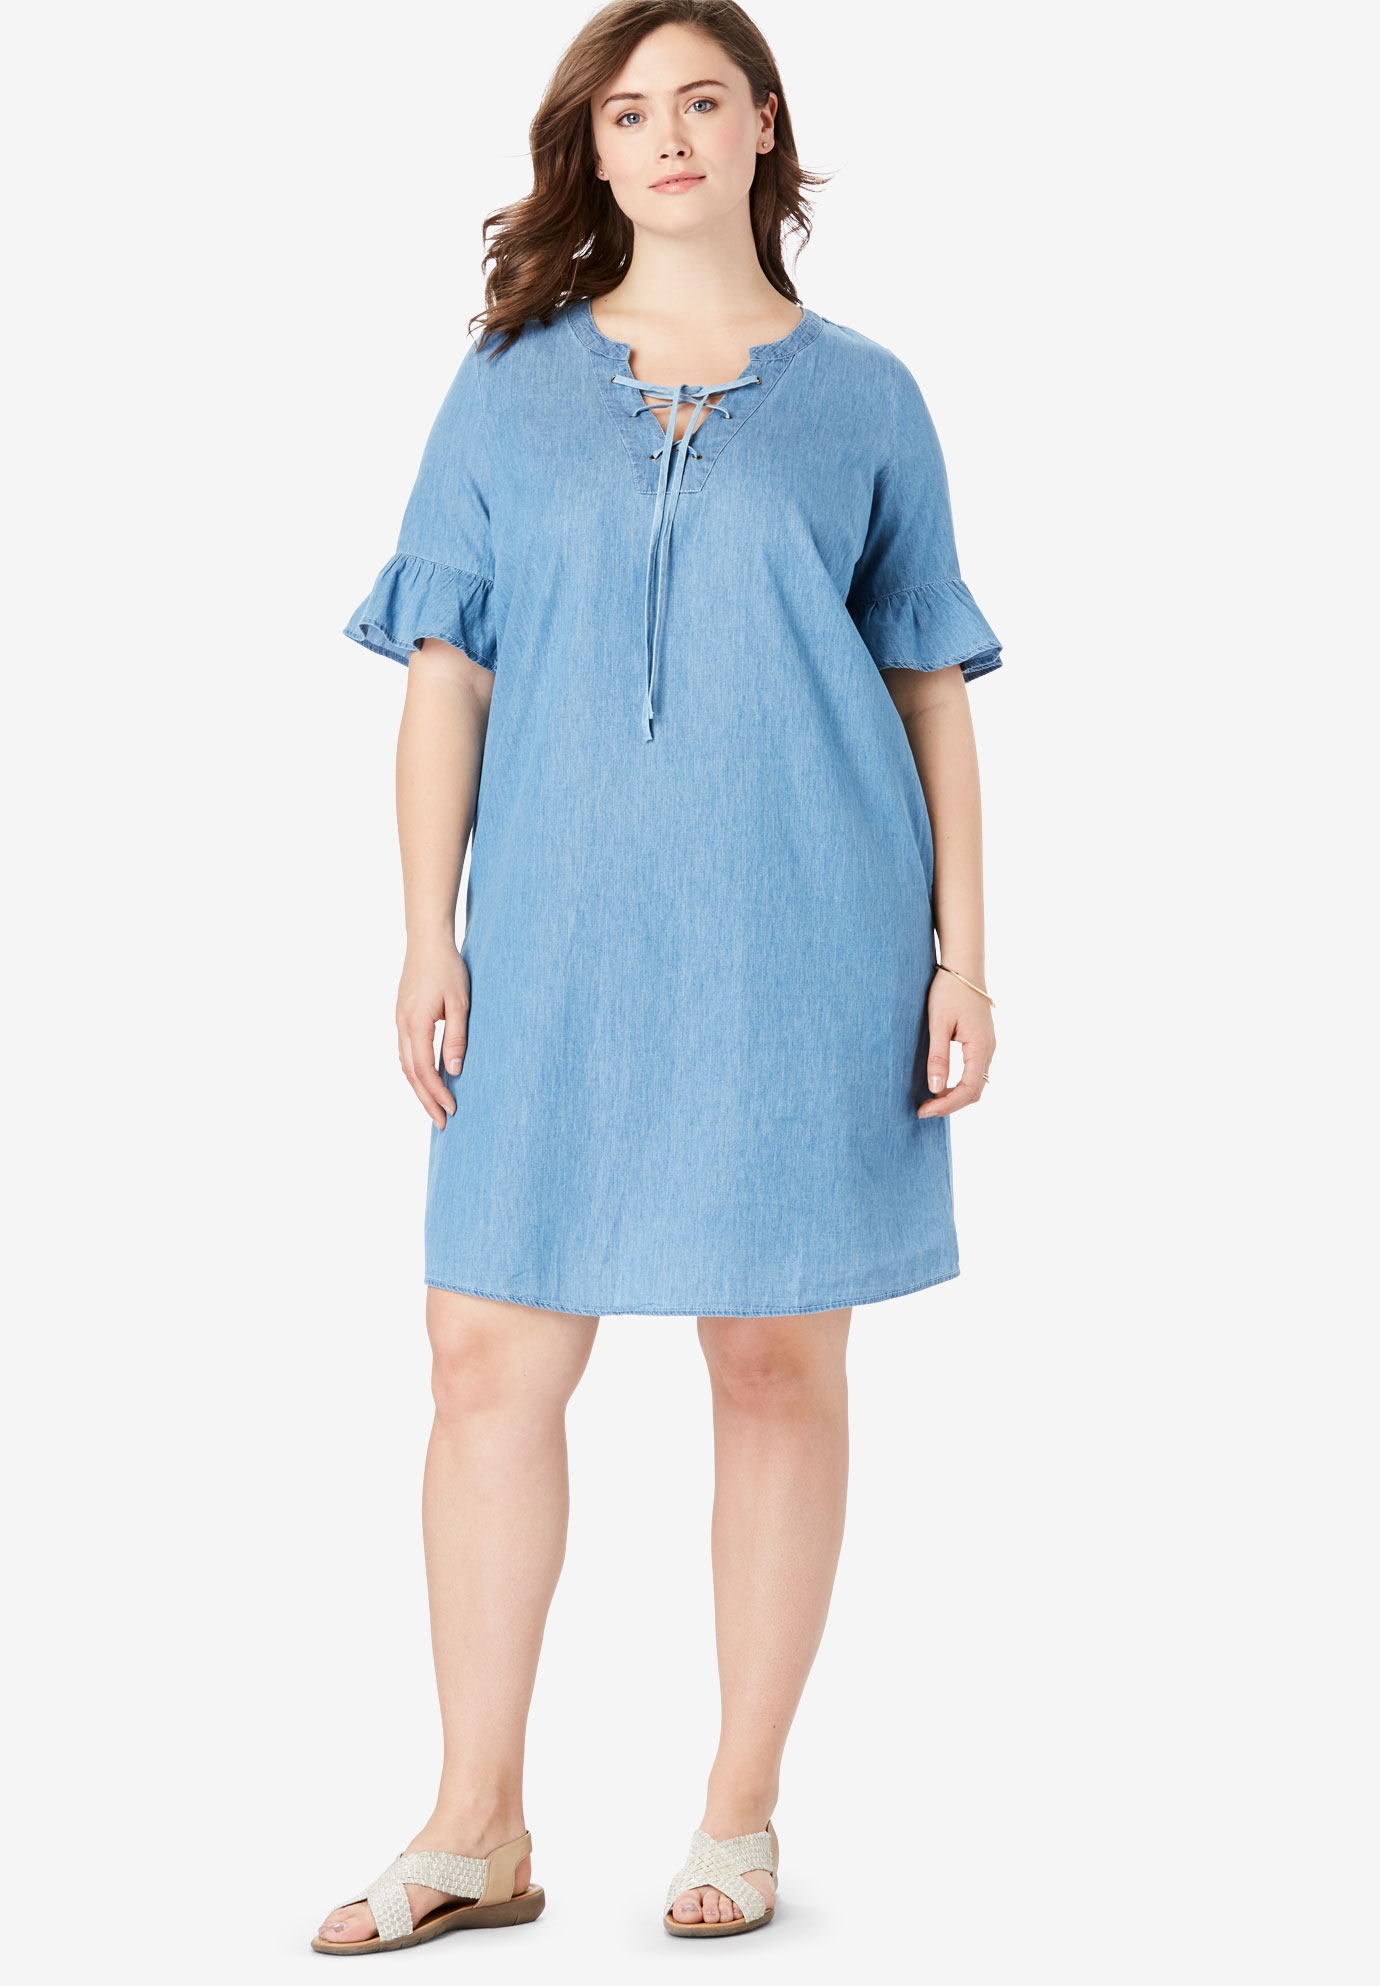 Ruffle Sleeve Lace-Up Dress,